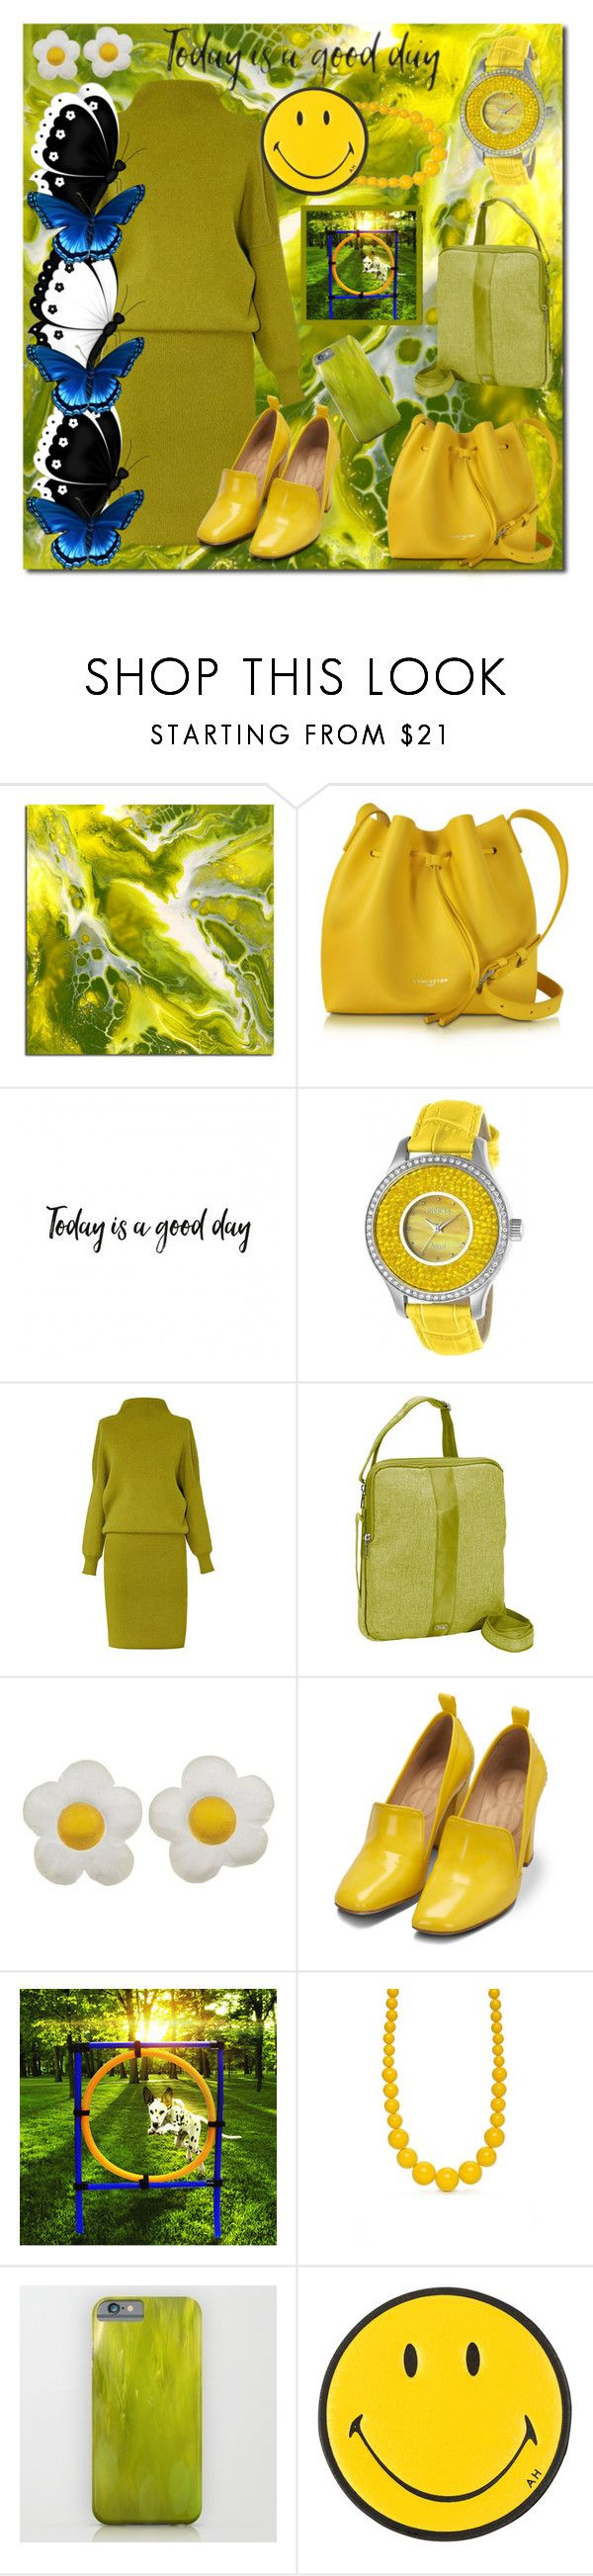 """This Is What Wednesday's Work Outfit Looks Like When Thursday Starts A 4 Day Agility Trial"" by sharee64 ❤ liked on Polyvore featuring Lancaster, Invicta, Lug, Bill Blass, Kim Rogers and Anya Hindmarch"